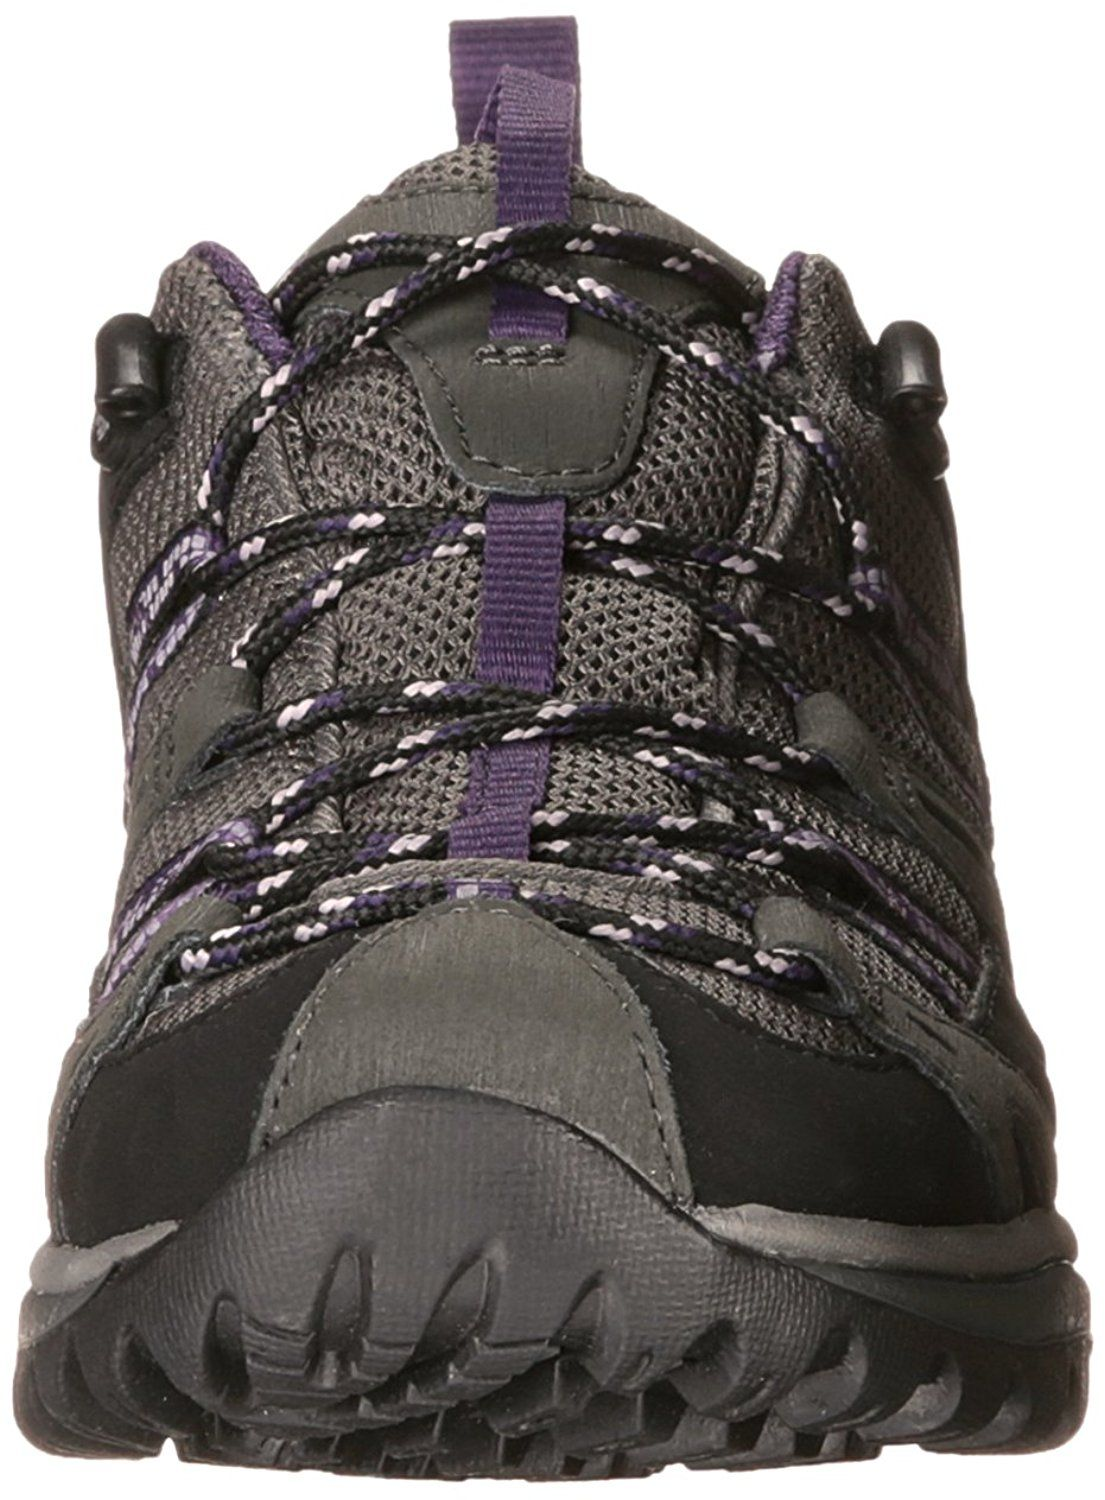 308671348b5df Merrell Siren Sport Gore Tex Womens Walking Shoes UK 7 Black Perfect Plum  >>> Hurry! Check out this great pin (This is an affiliate link) #HikingShoes